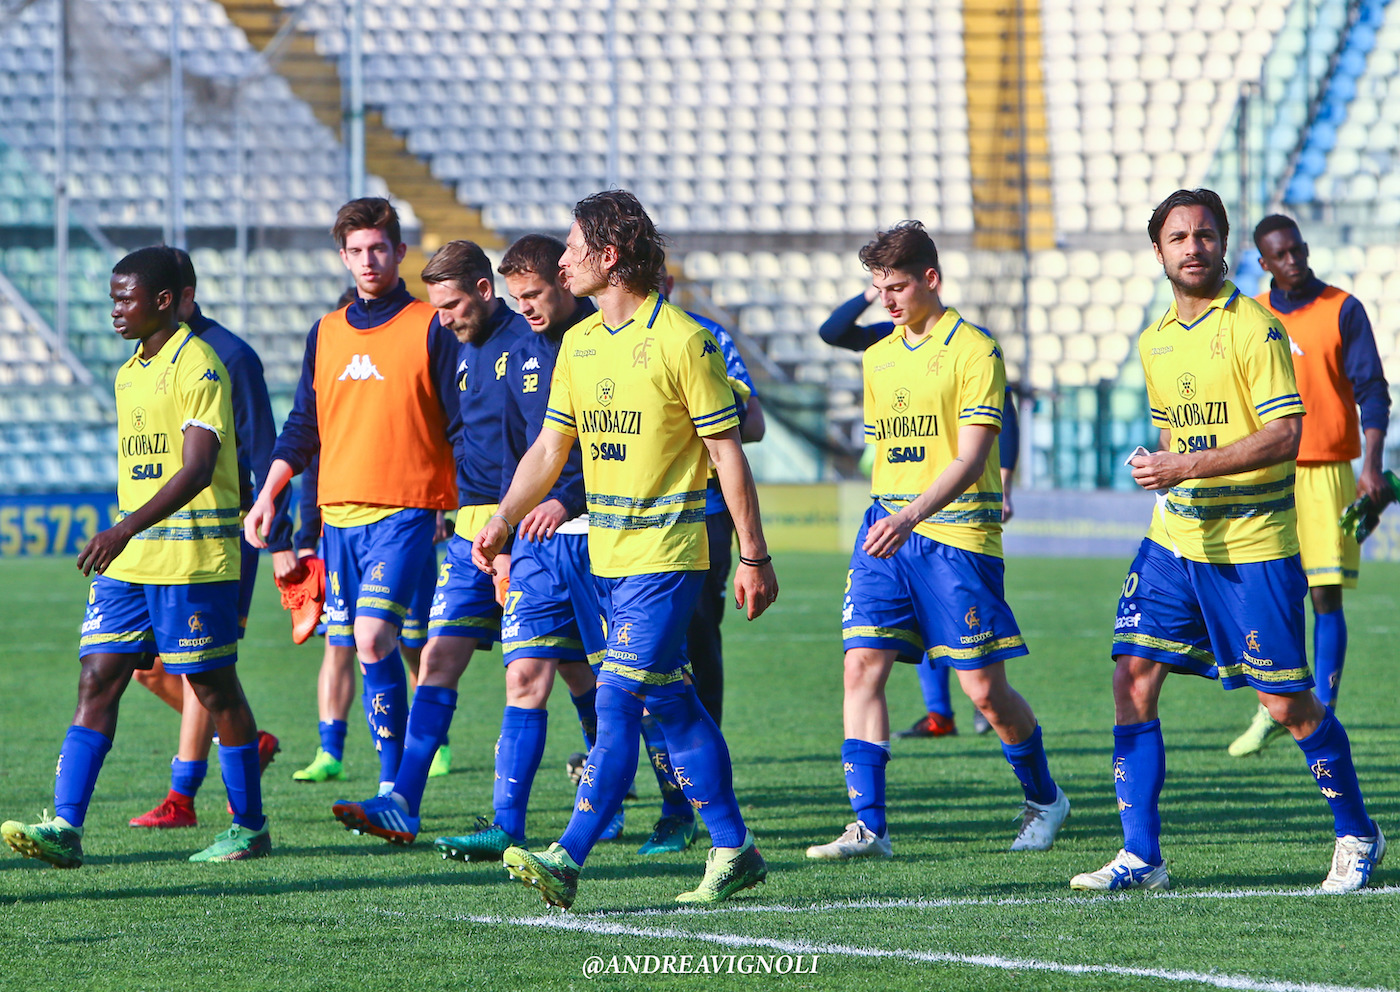 Serie D, highlights Modena-Classe 0-1